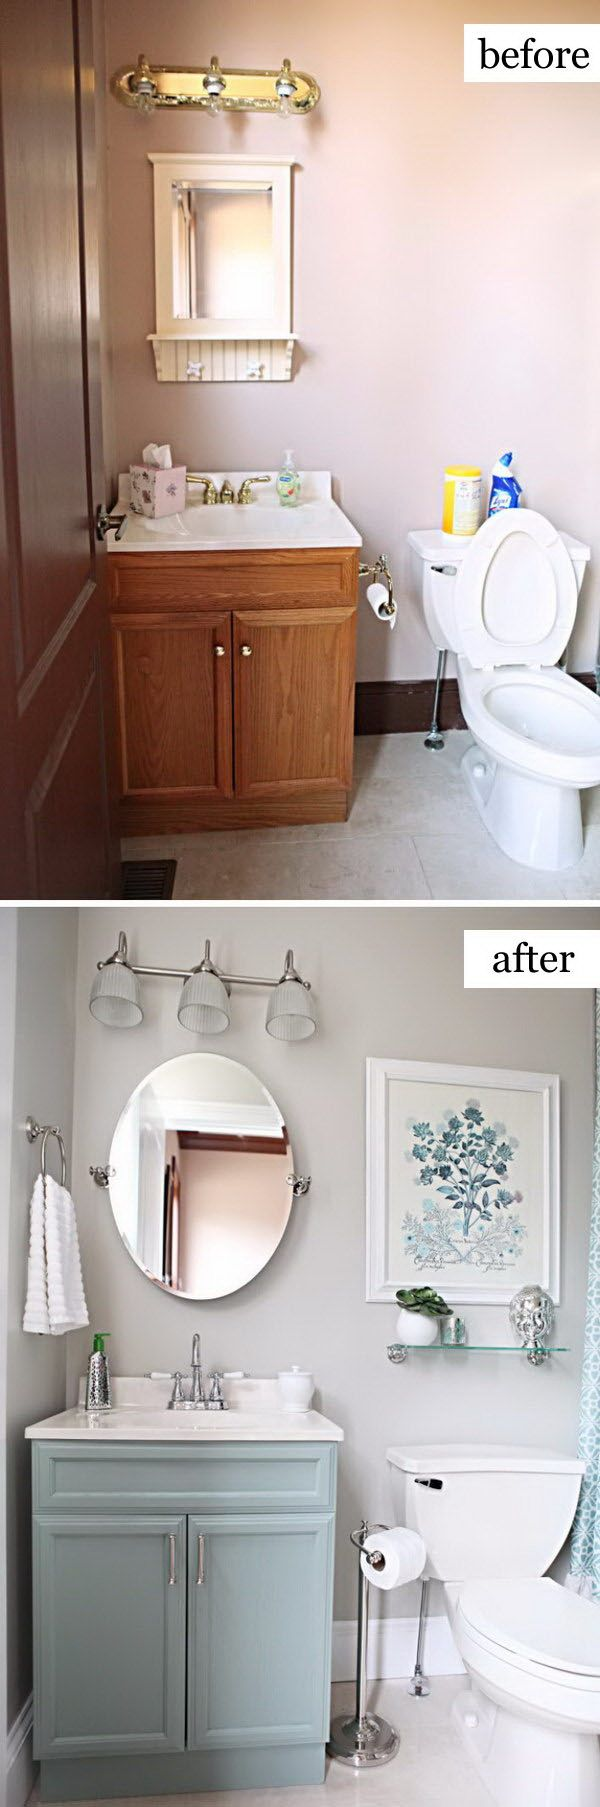 Bathroom Makeovers And Remodeling Ideas best 25+ bathroom makeovers ideas on pinterest | bathroom ideas